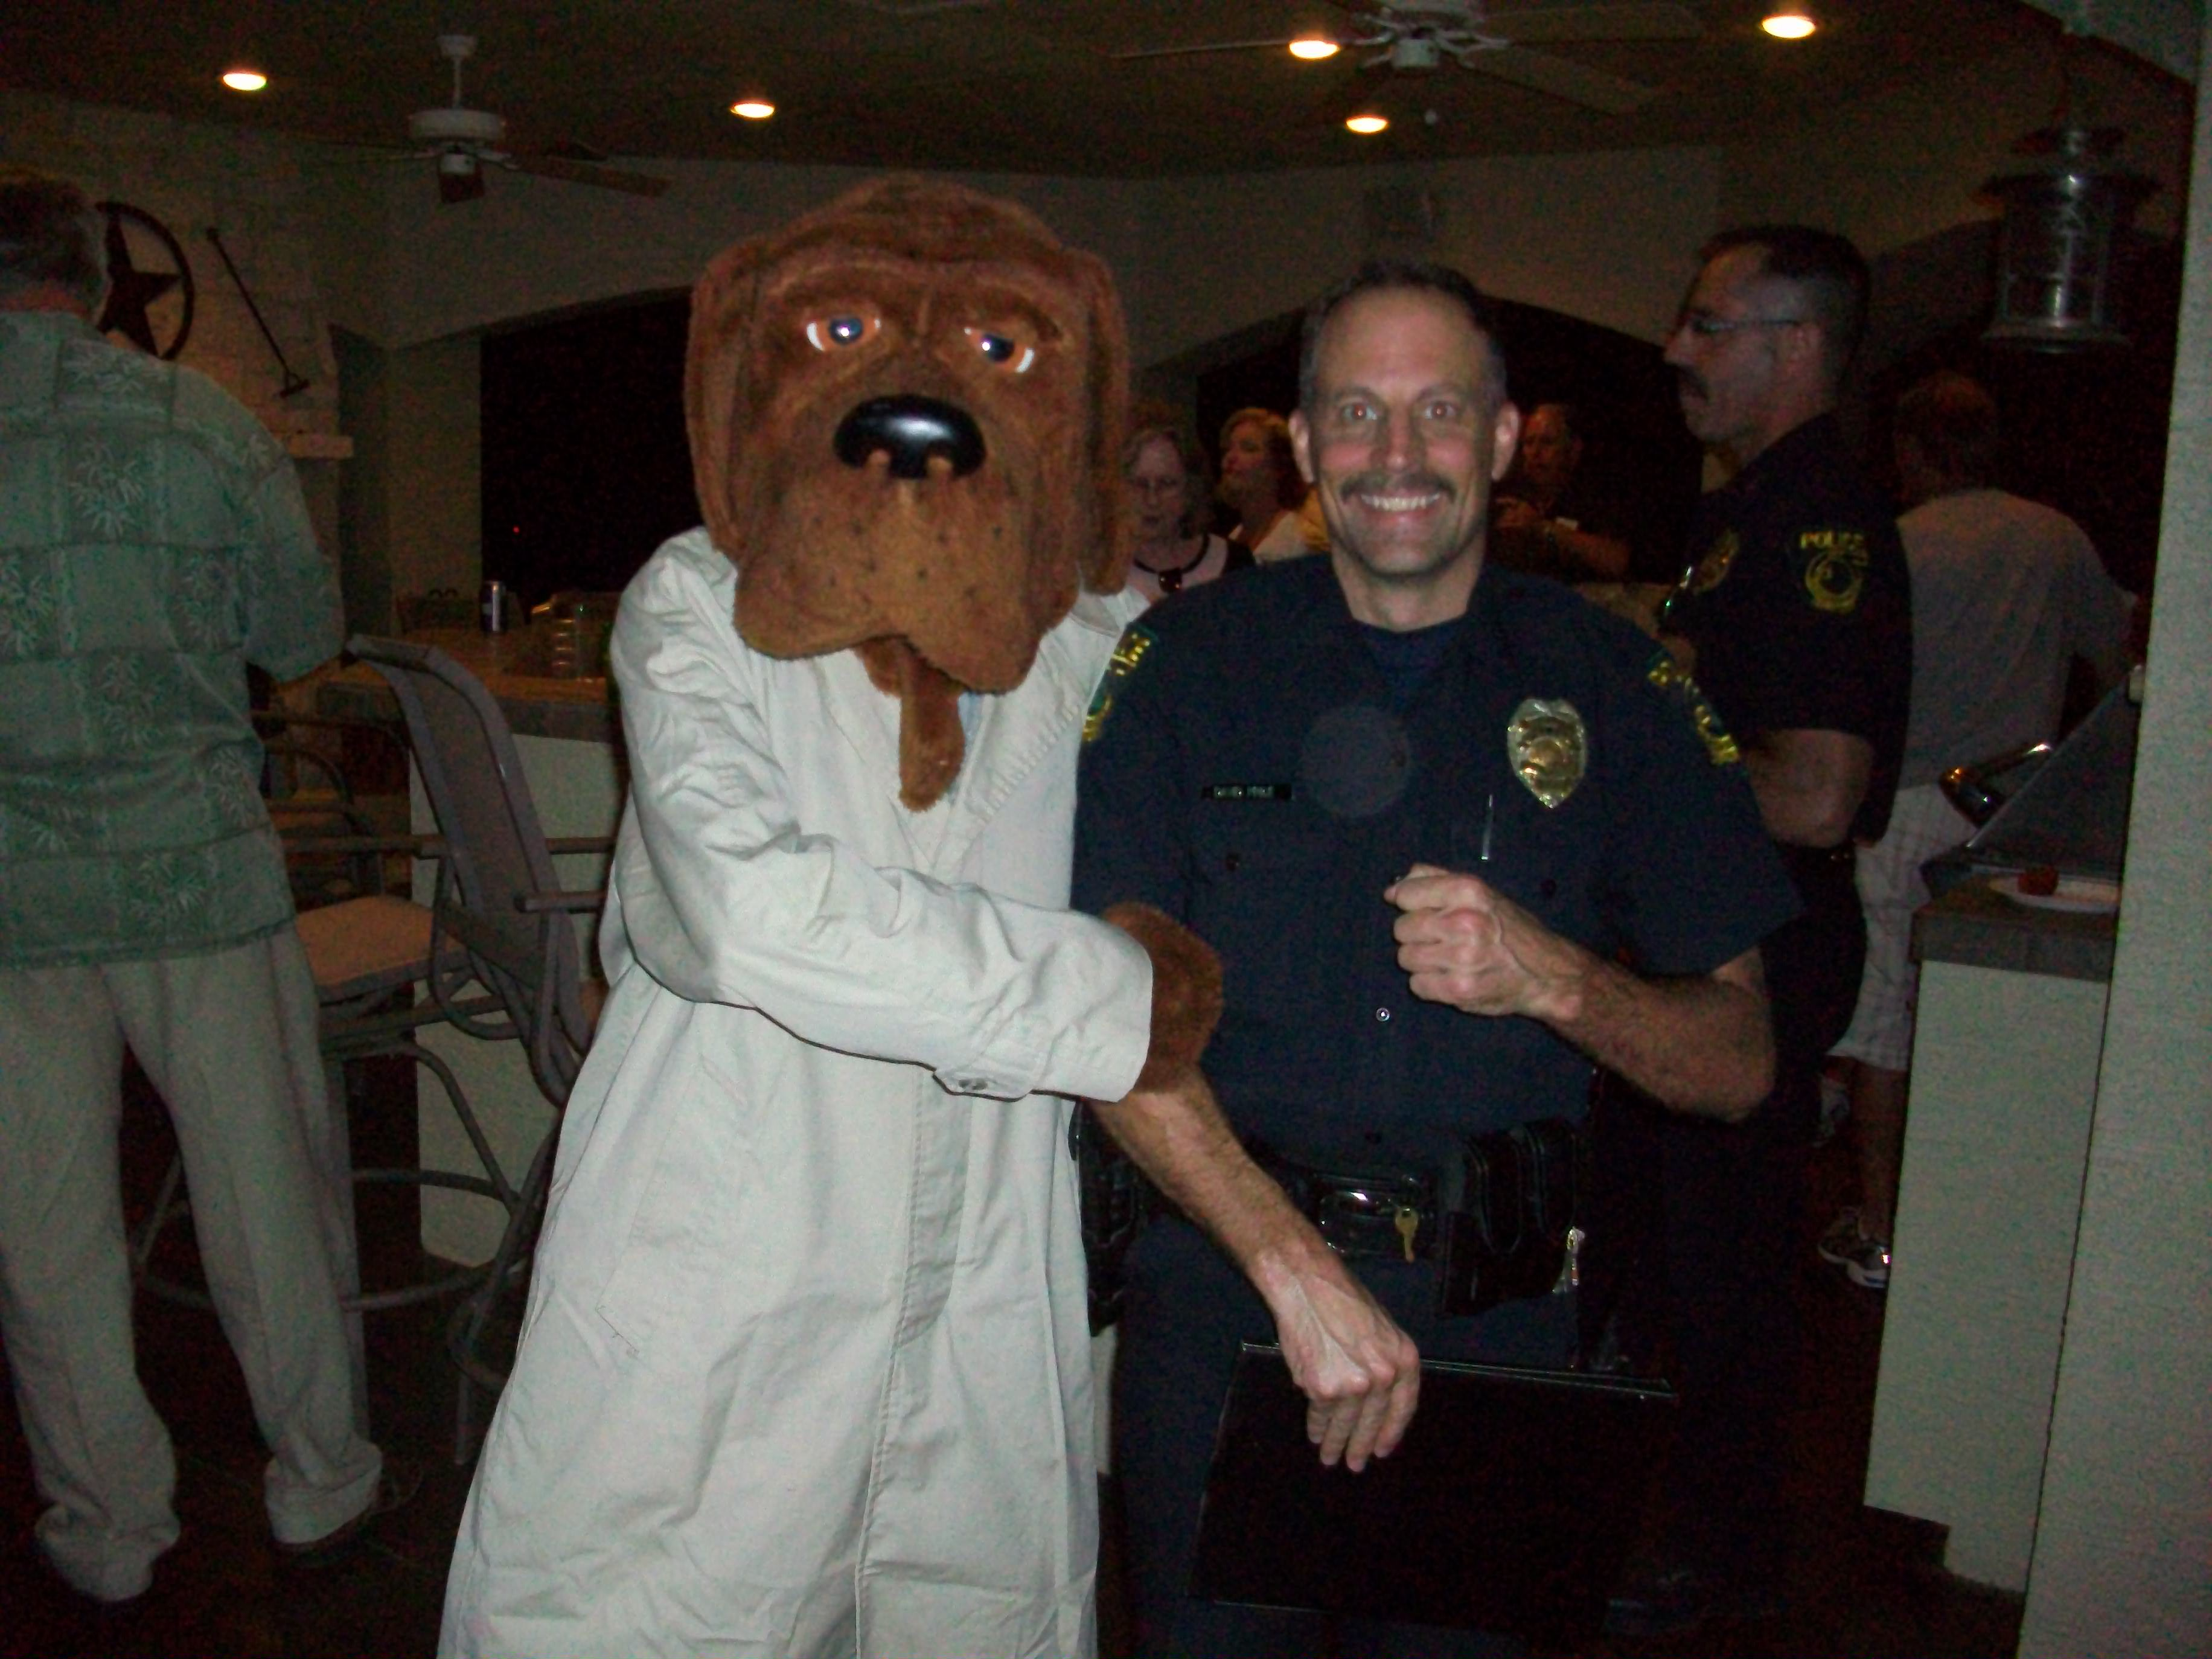 McGruff and Officer